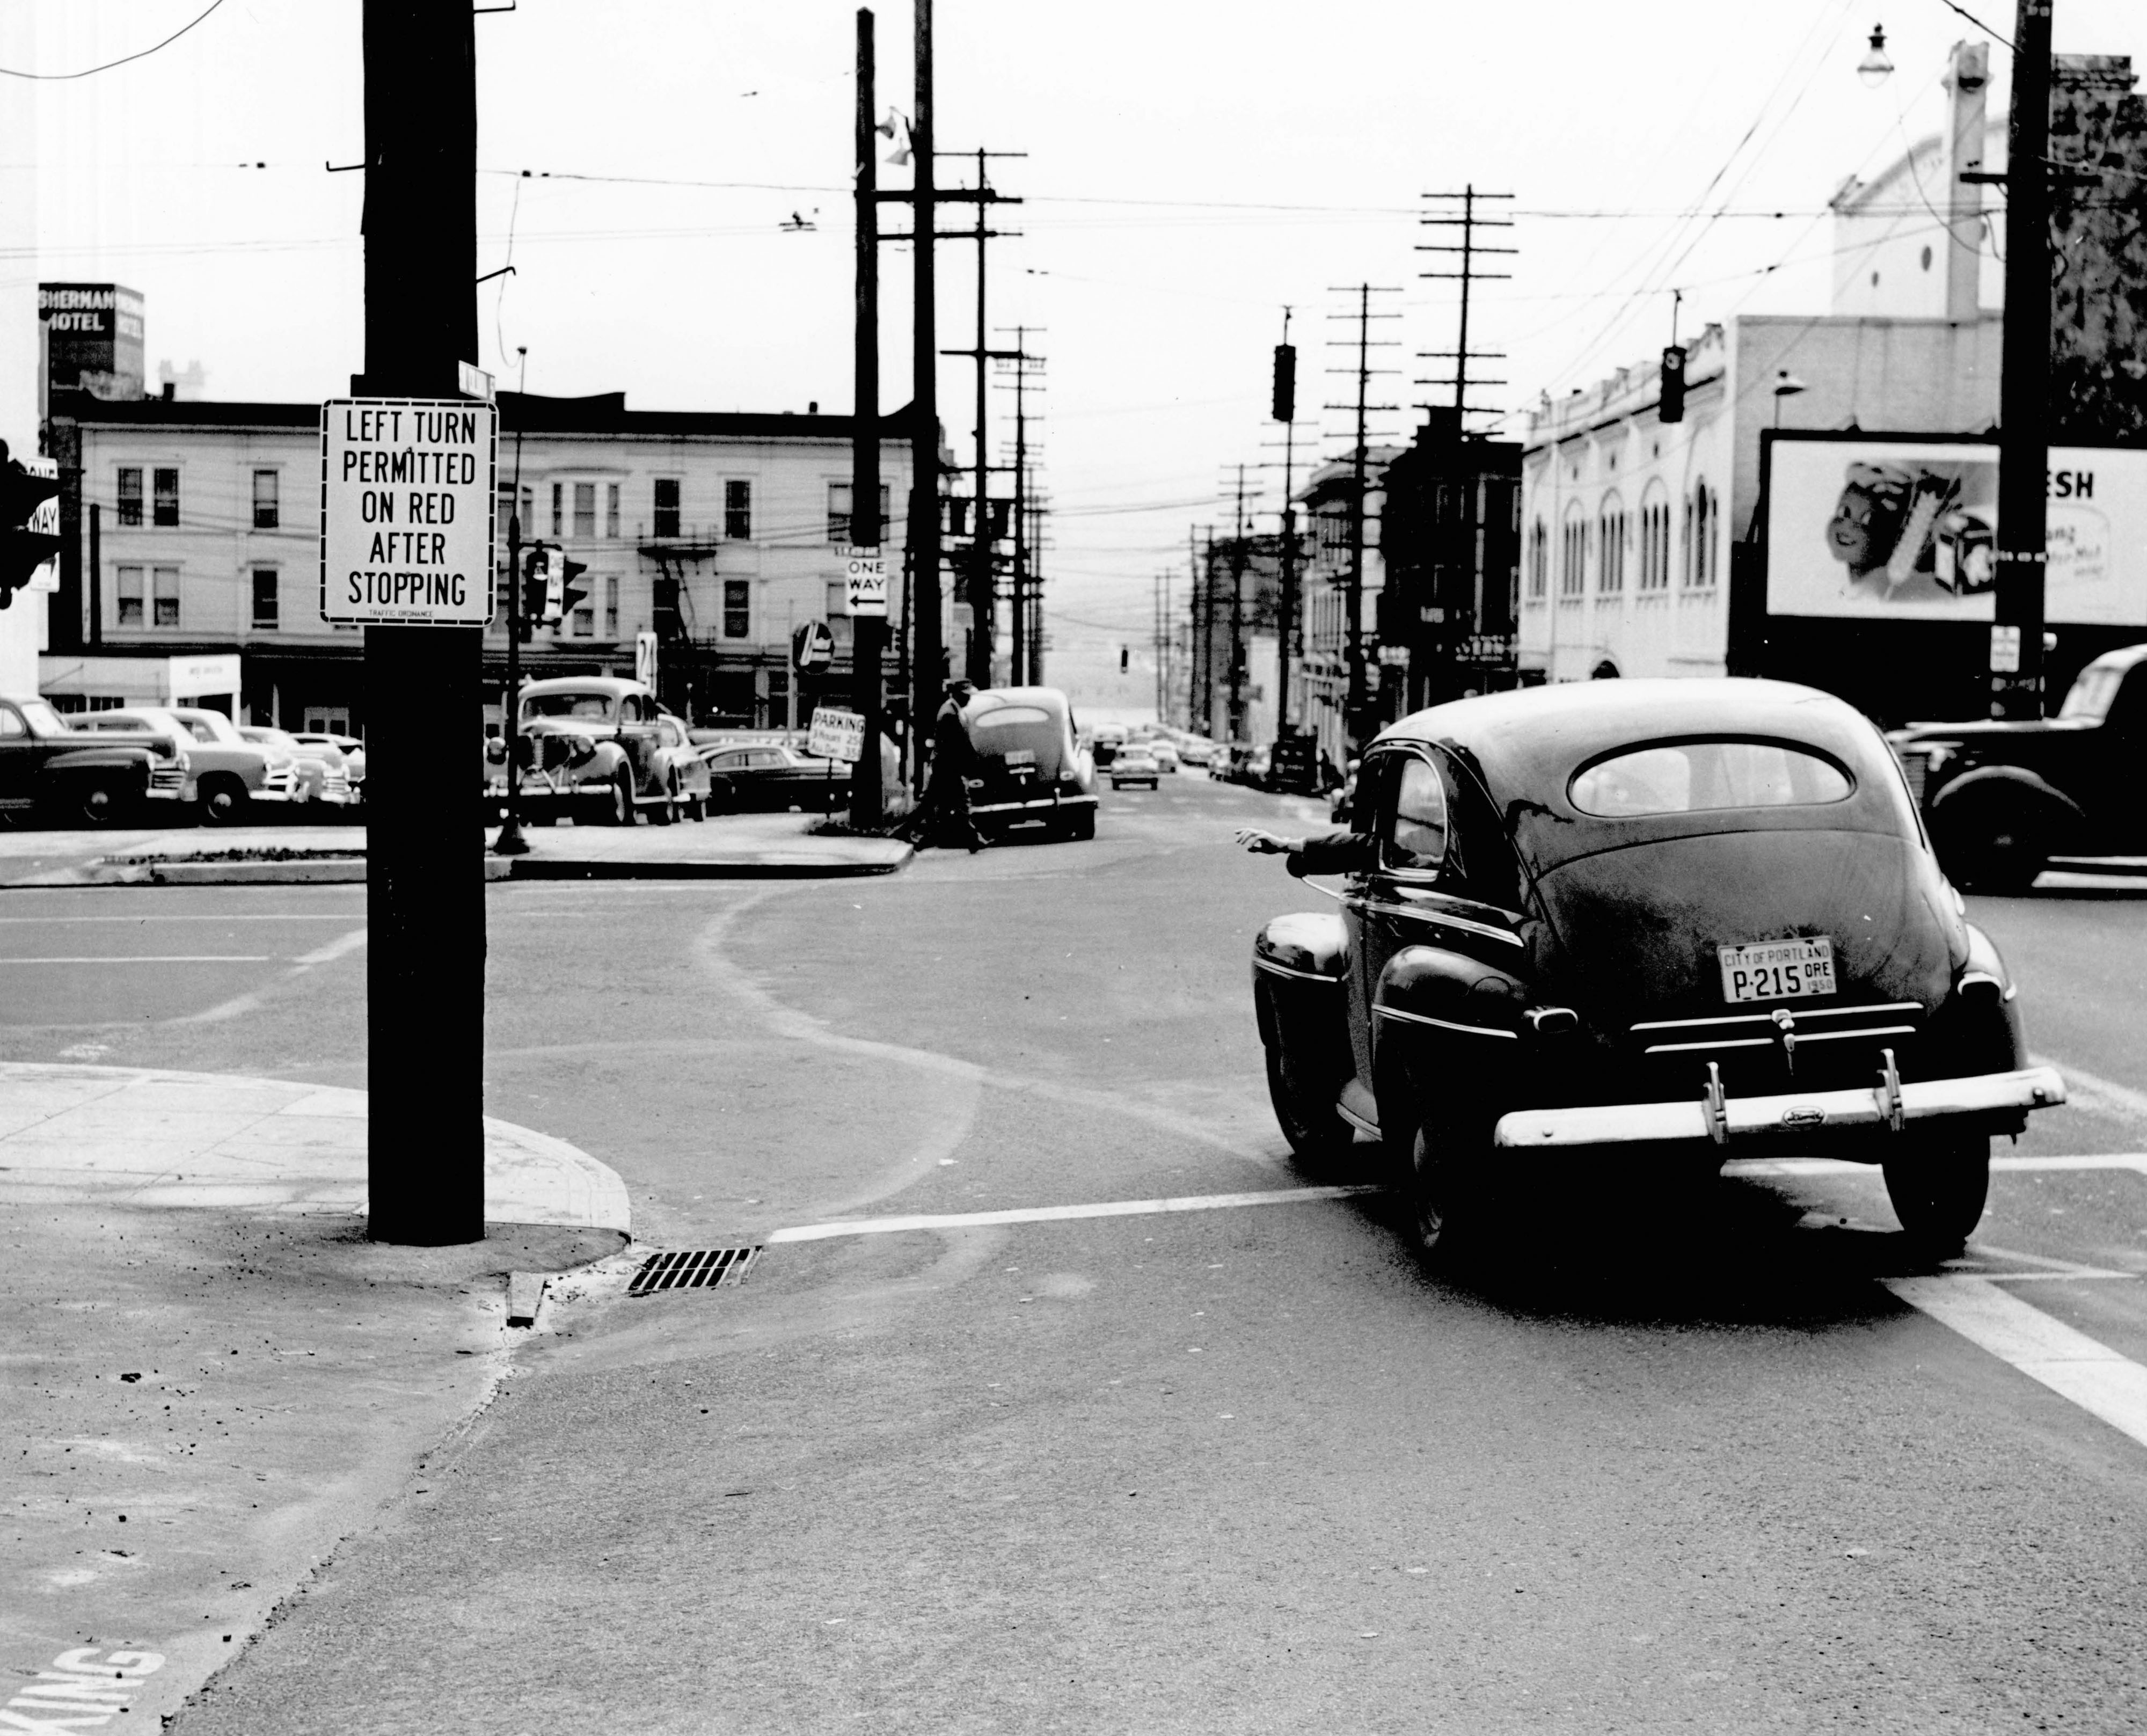 SW Columbia & 4th, 1950